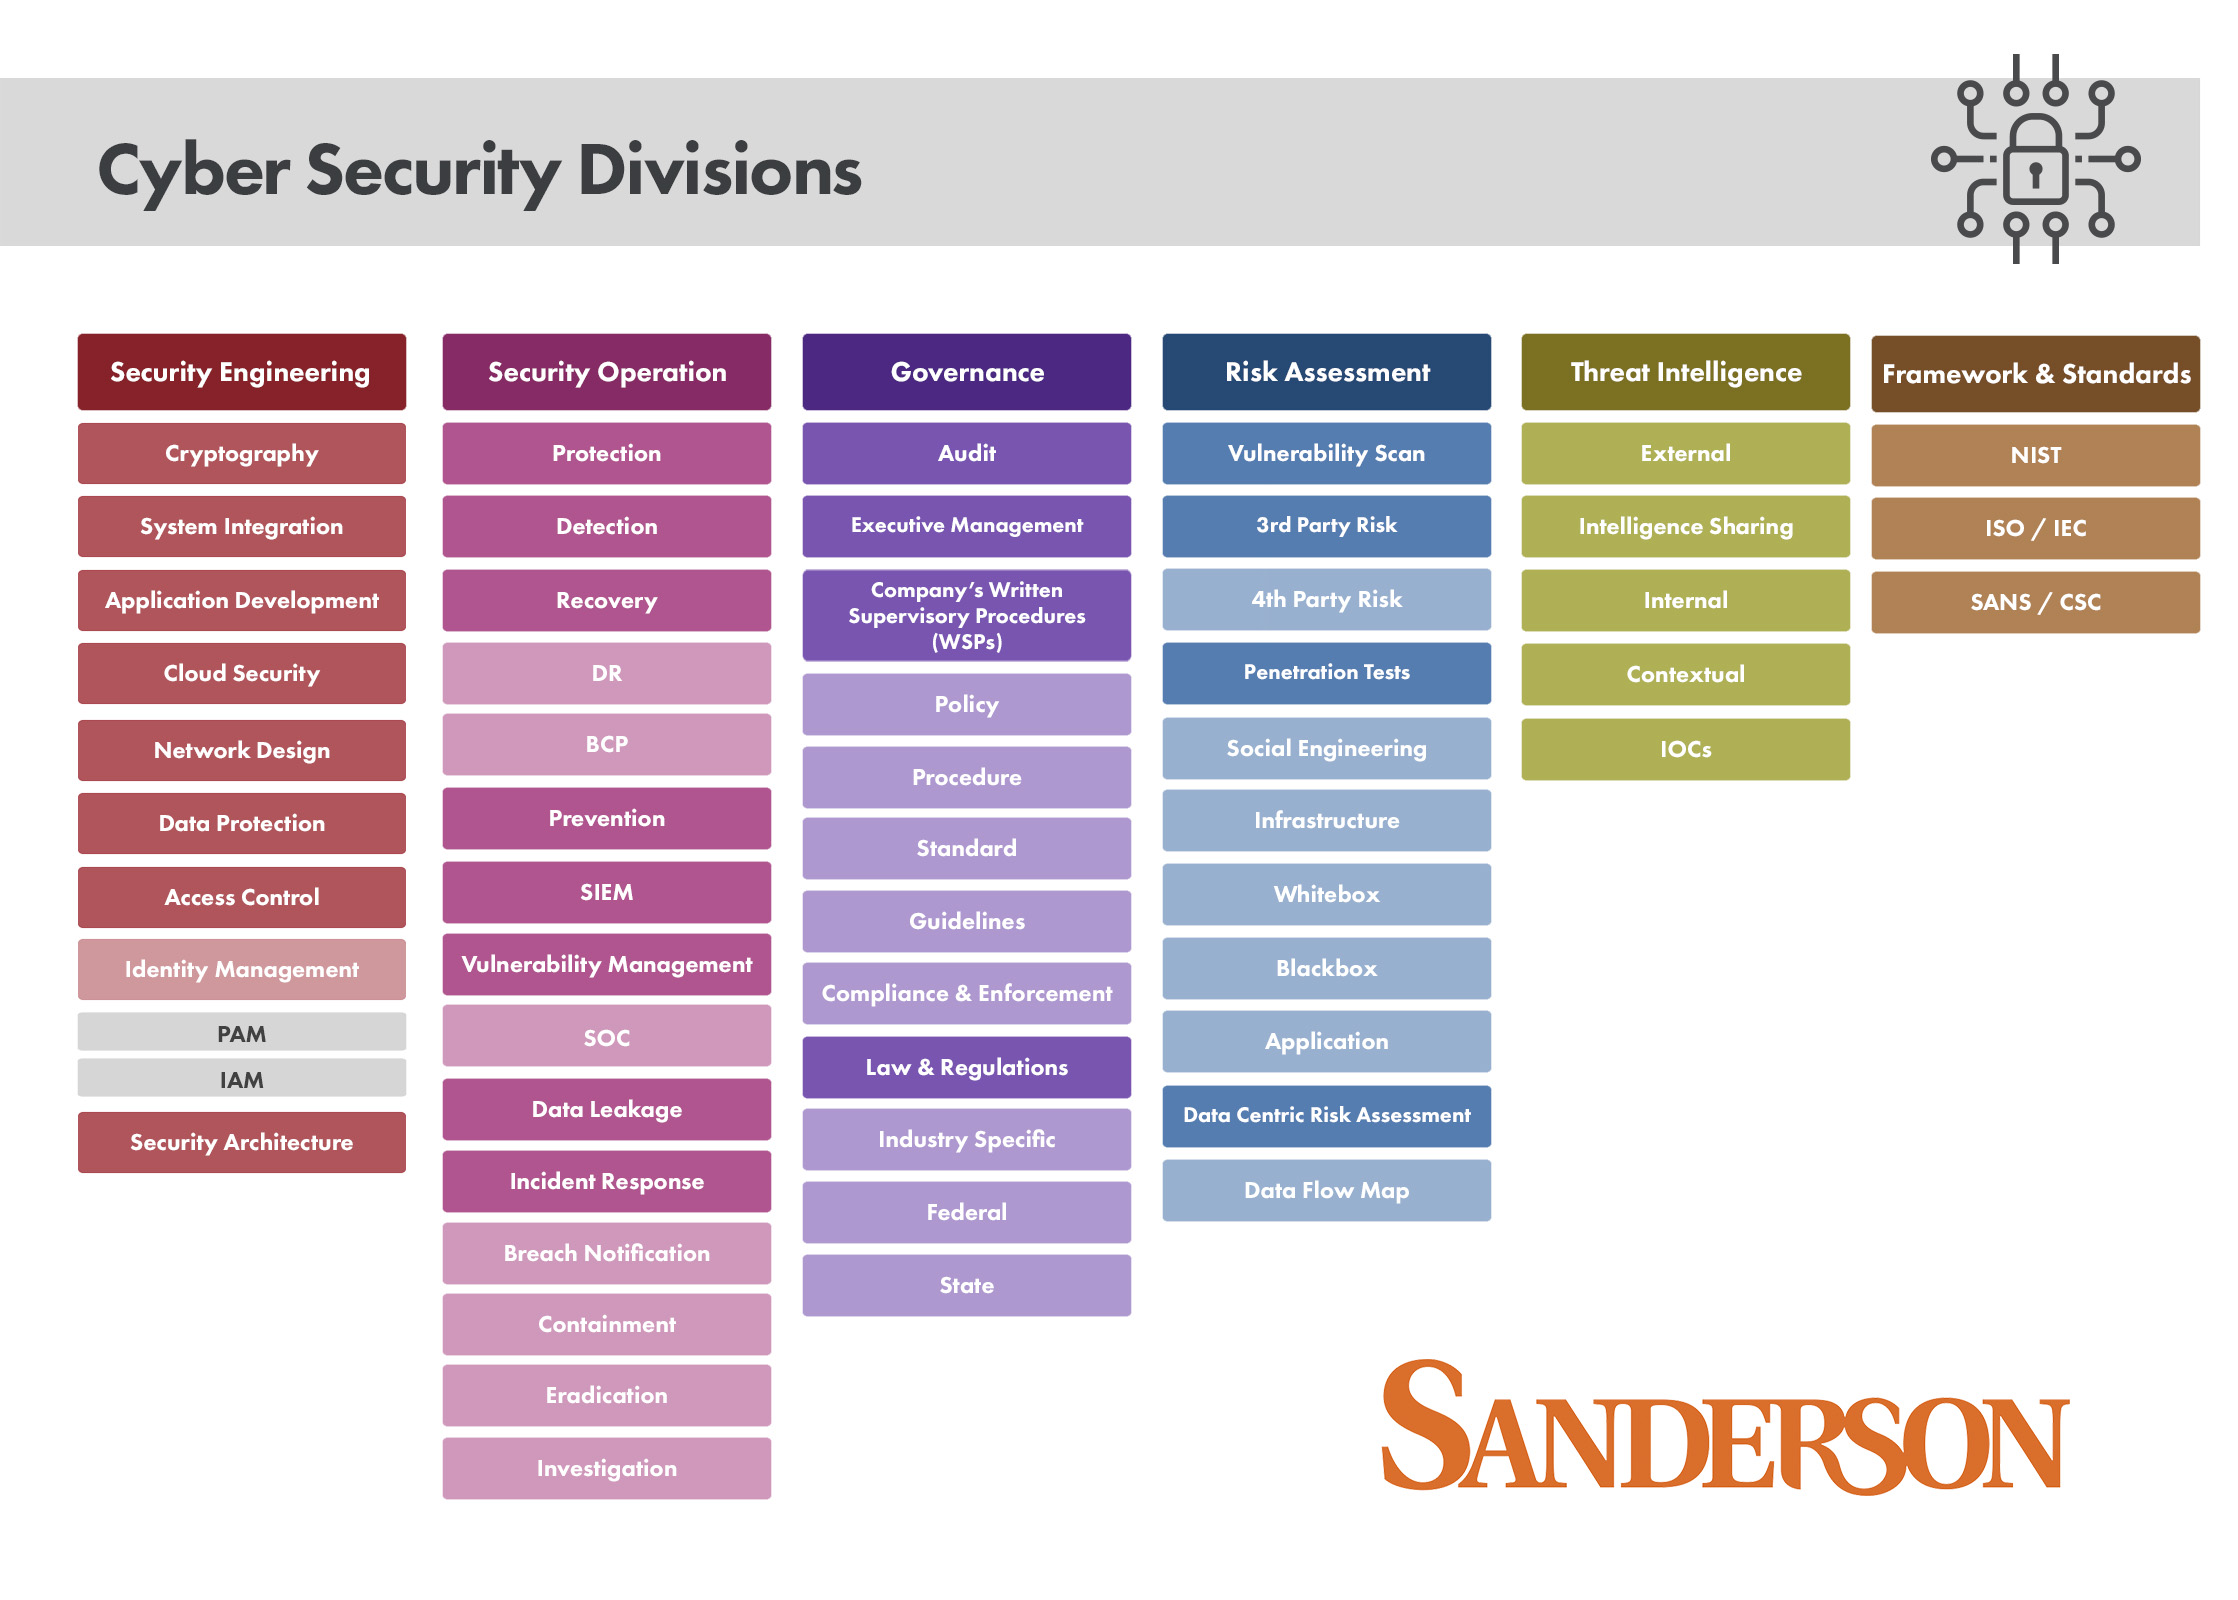 Cyber Security Divisions Map